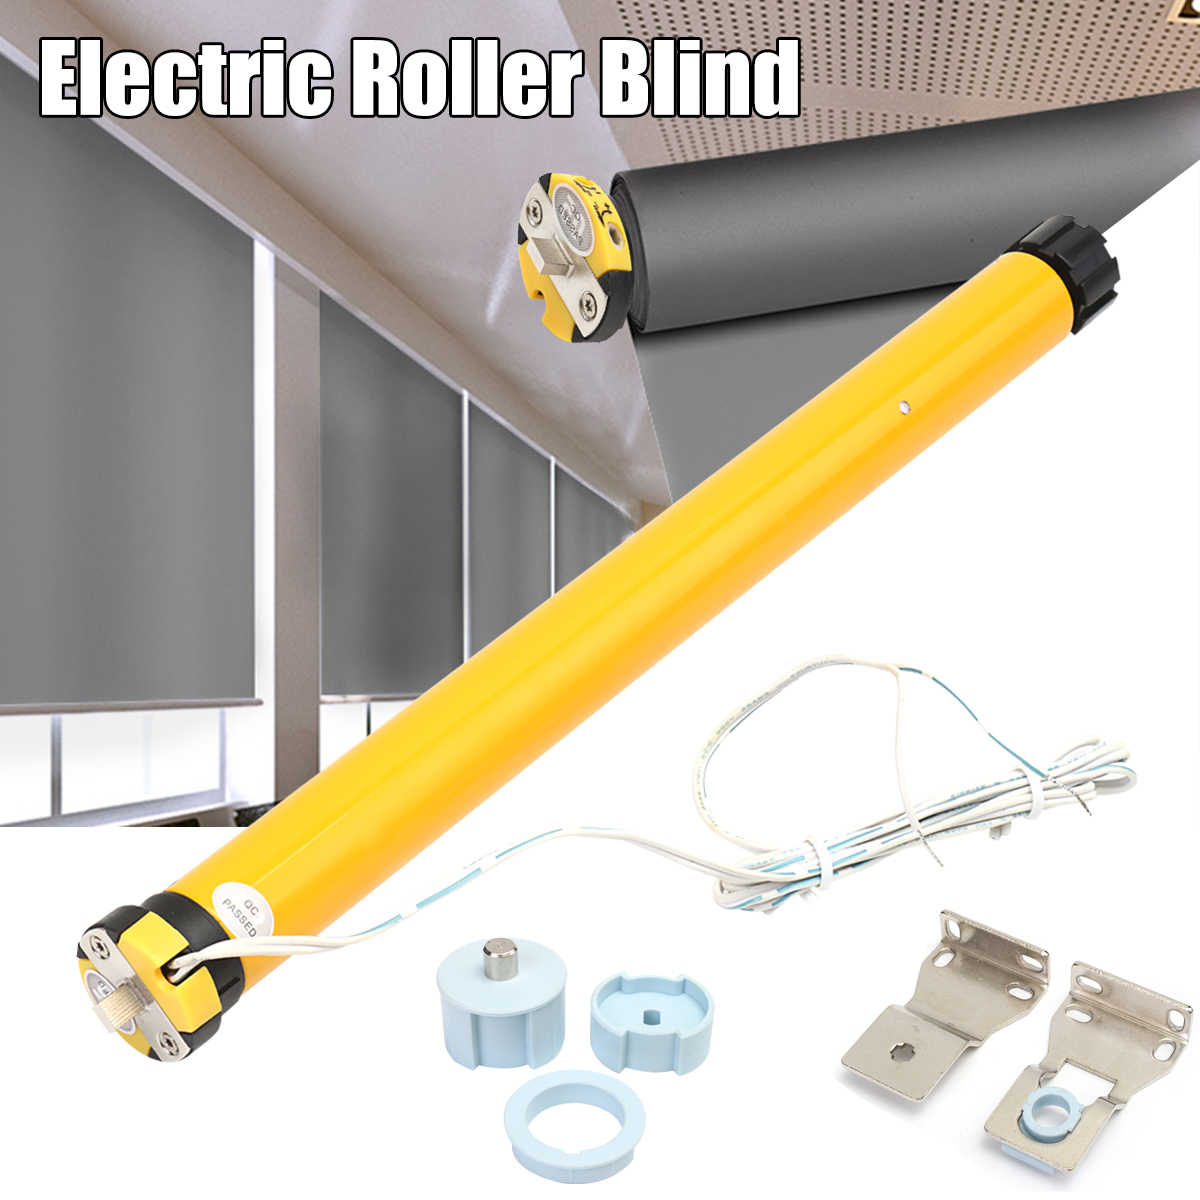 DC 12V 11W 25mm DIY 30RPM Electric Roller Blind / Shade Tubular Motor Kit Set High Quality